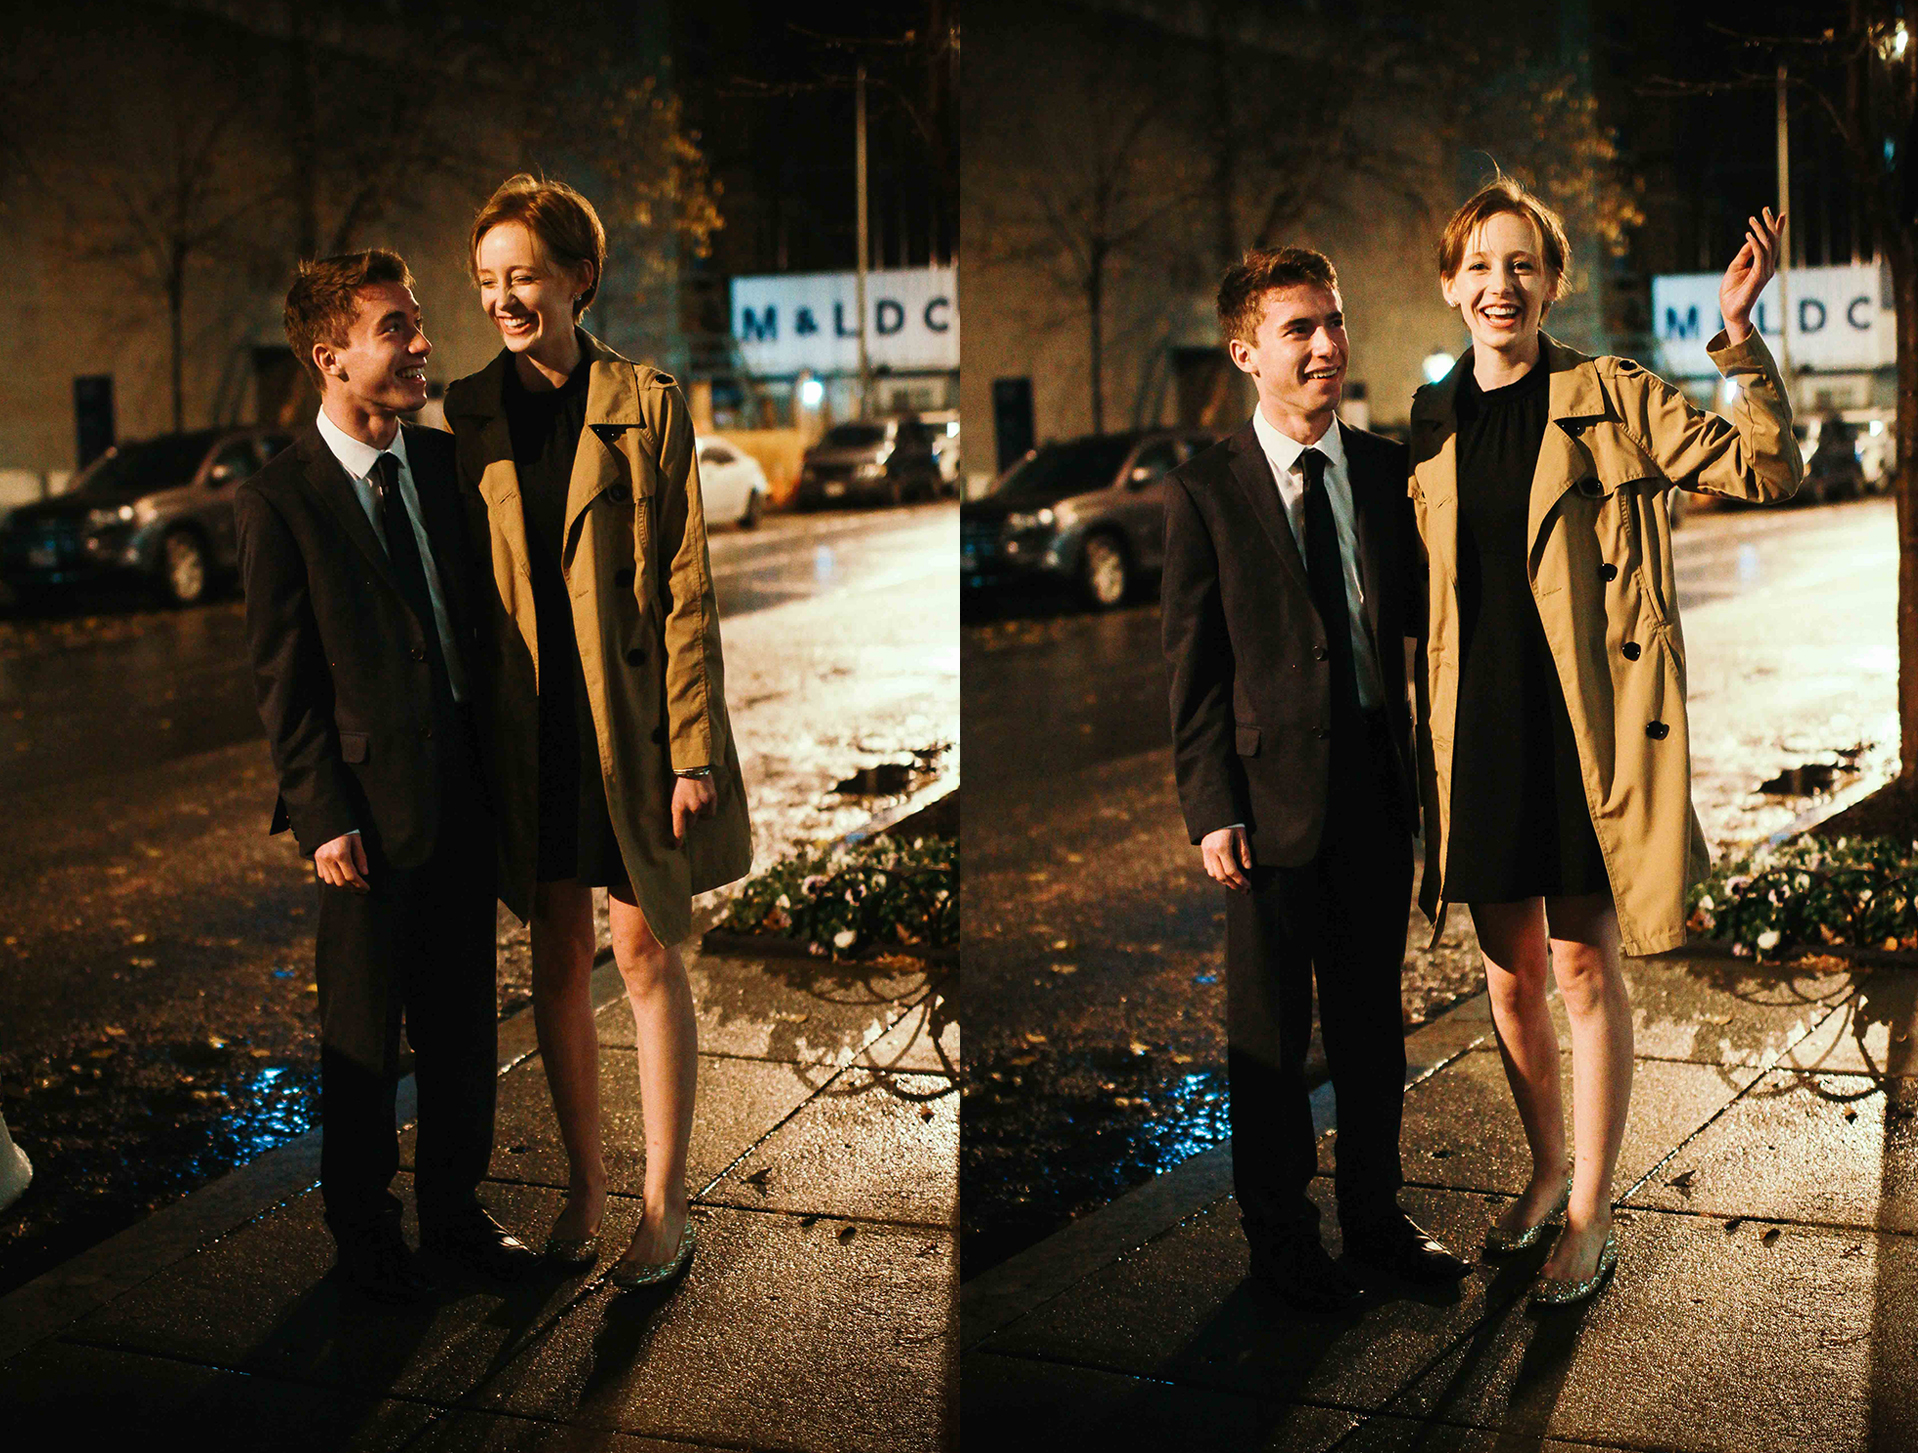 friends at night in the city.jpg